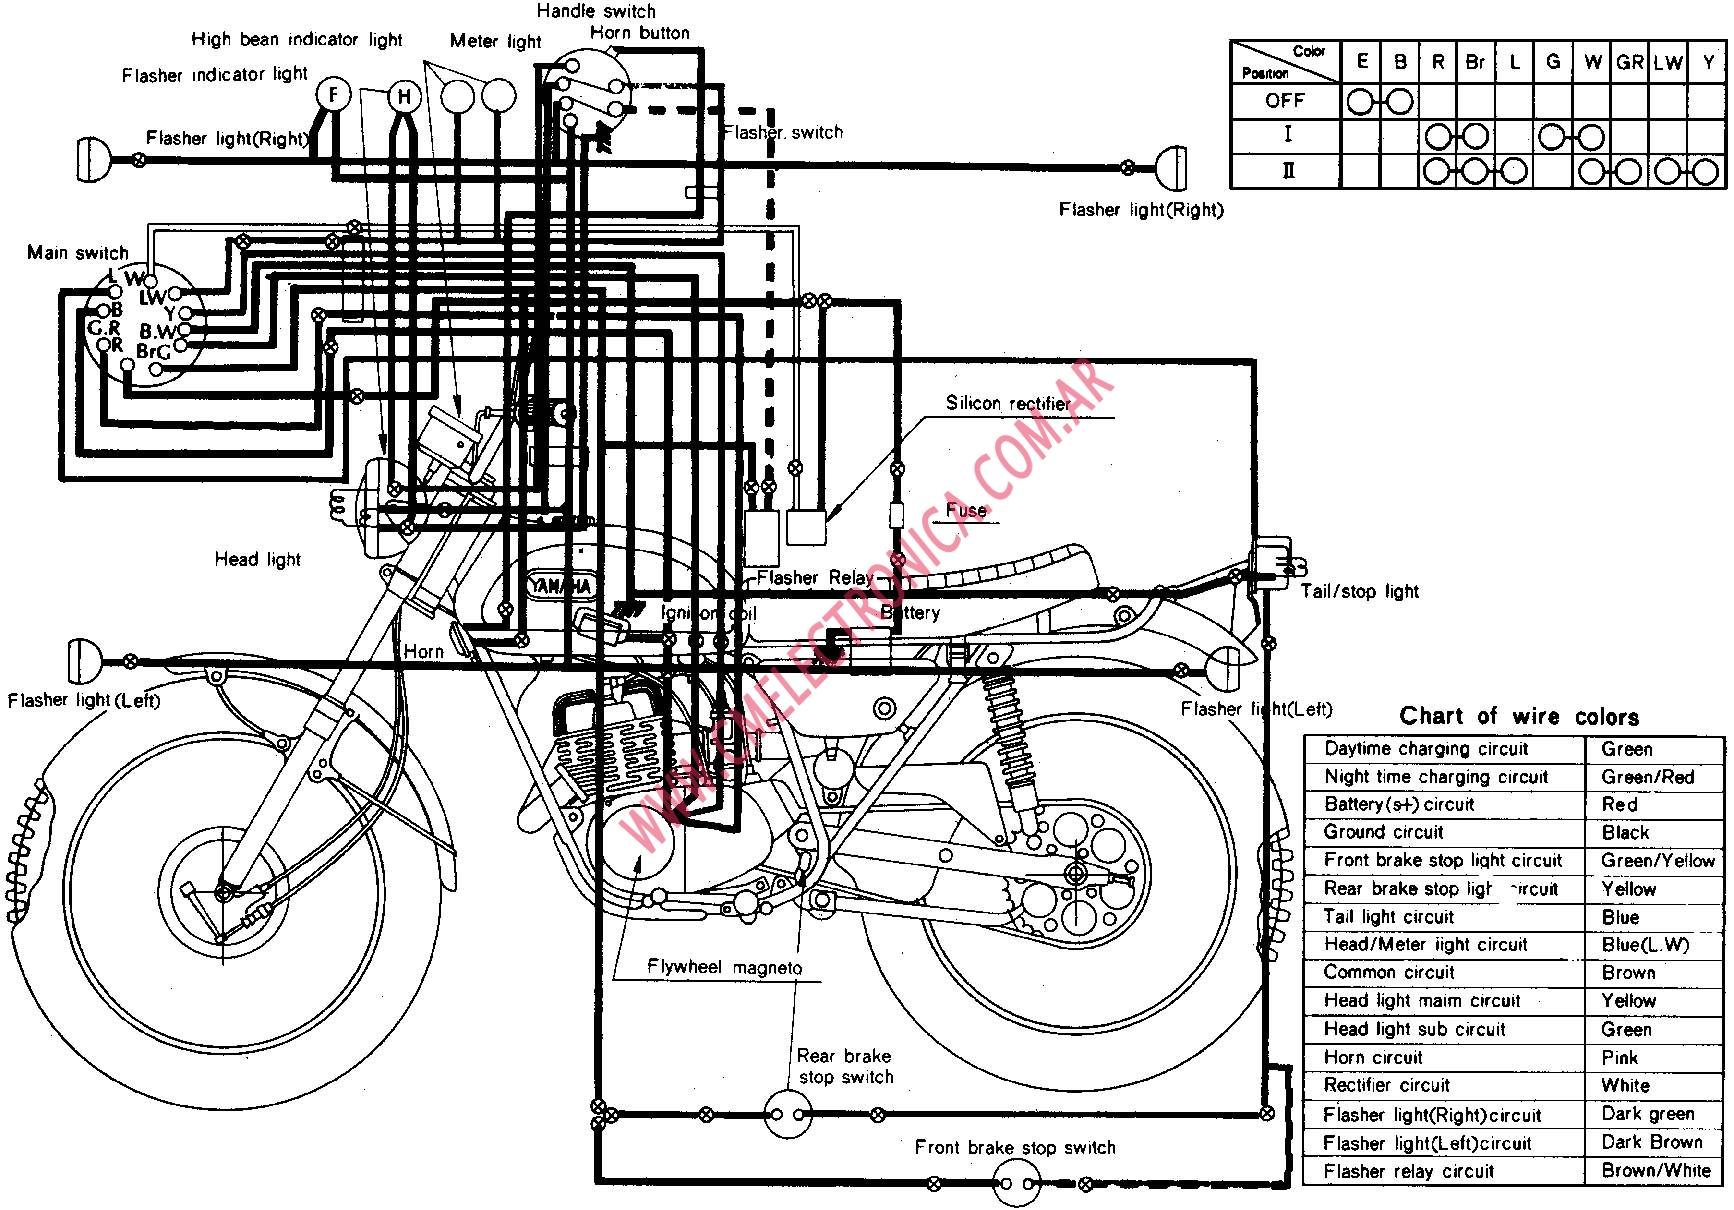 Yamaha Kodiak 450 Parts Diagram